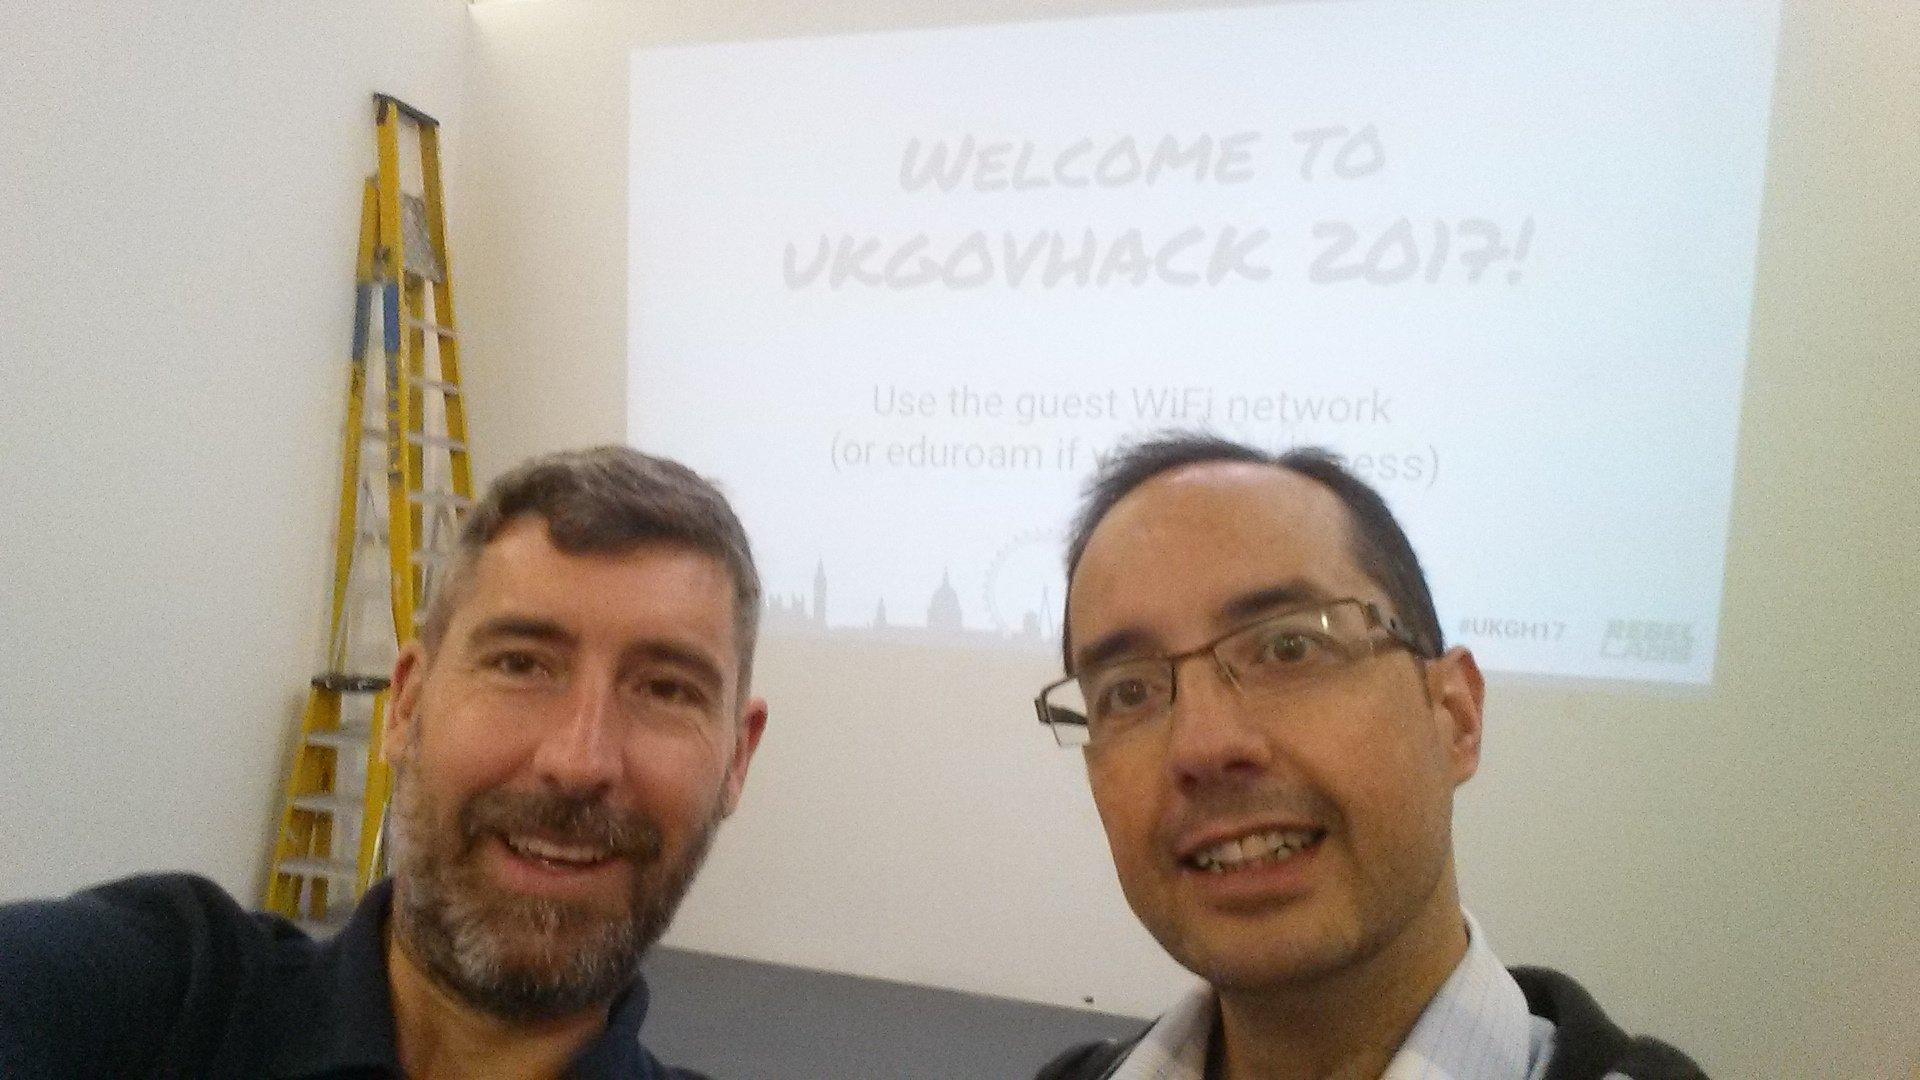 @drsiant @jespinera @foodgov Our first ukgovhack #UKGH17 Looking forward to learn a lot @drsiant @jespinera https://t.co/OJxQXywDHD